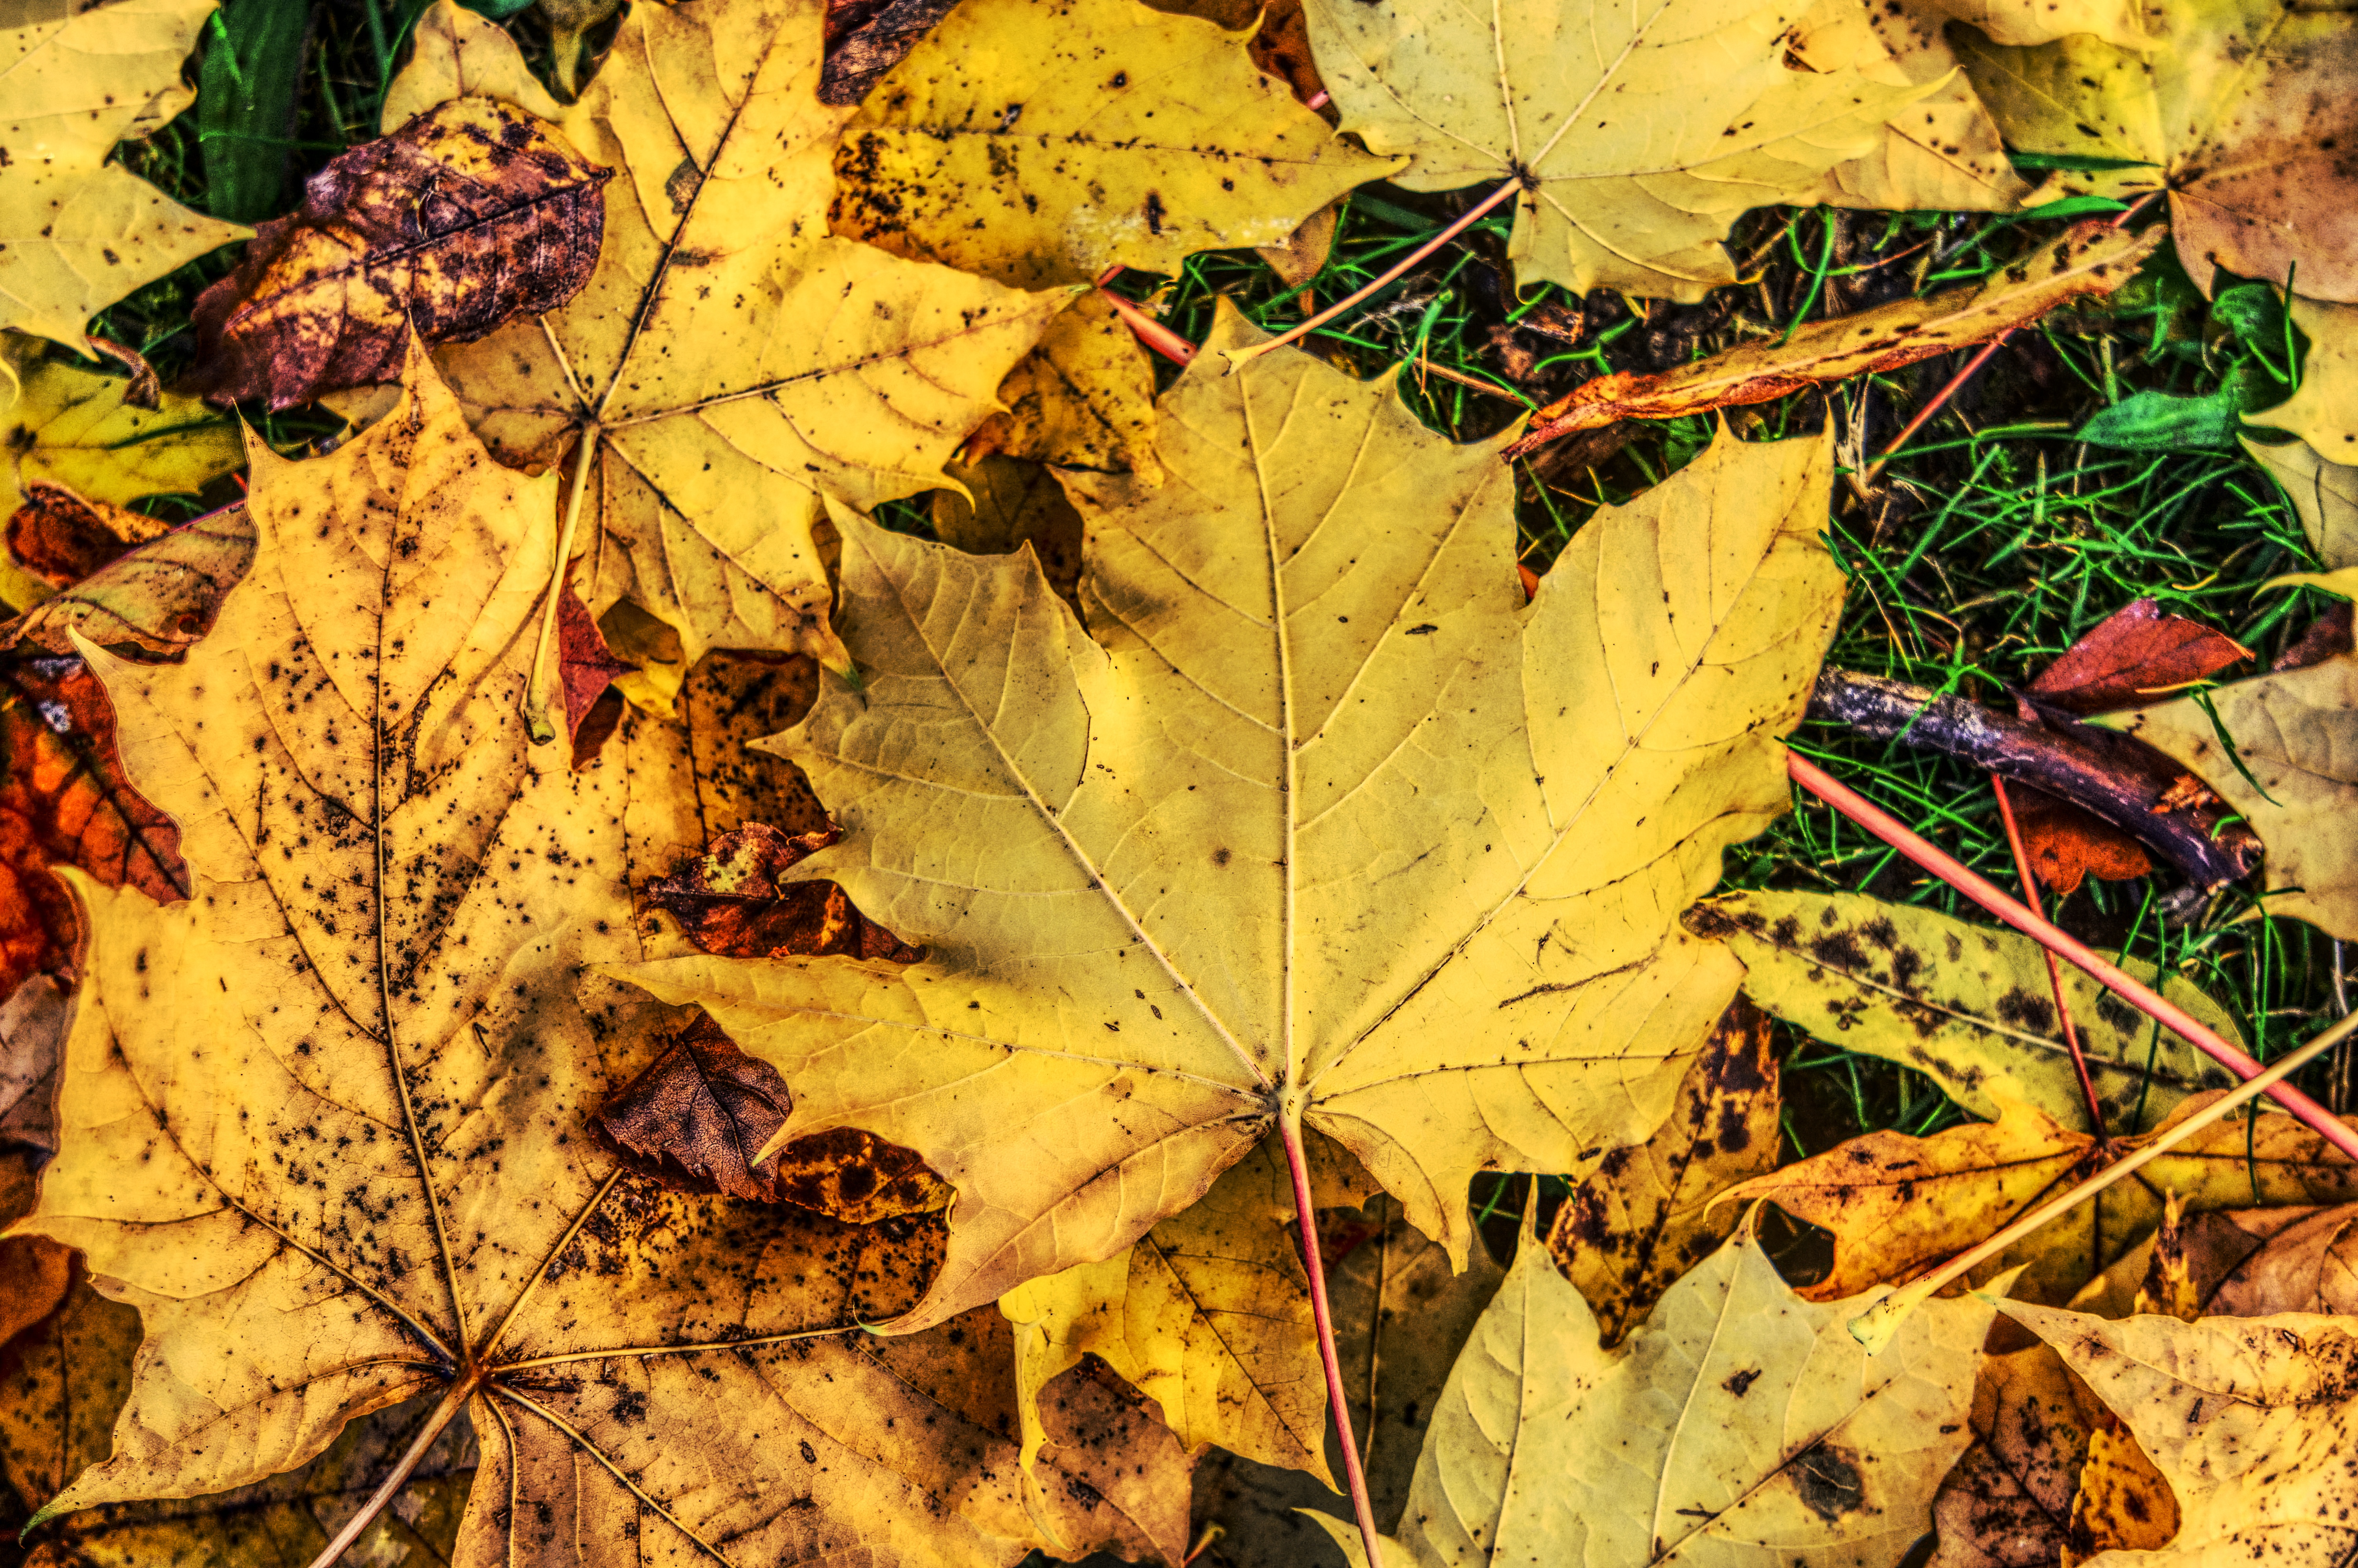 117177 download wallpaper Nature, Foliage, Maple, Autumn, Fallen screensavers and pictures for free